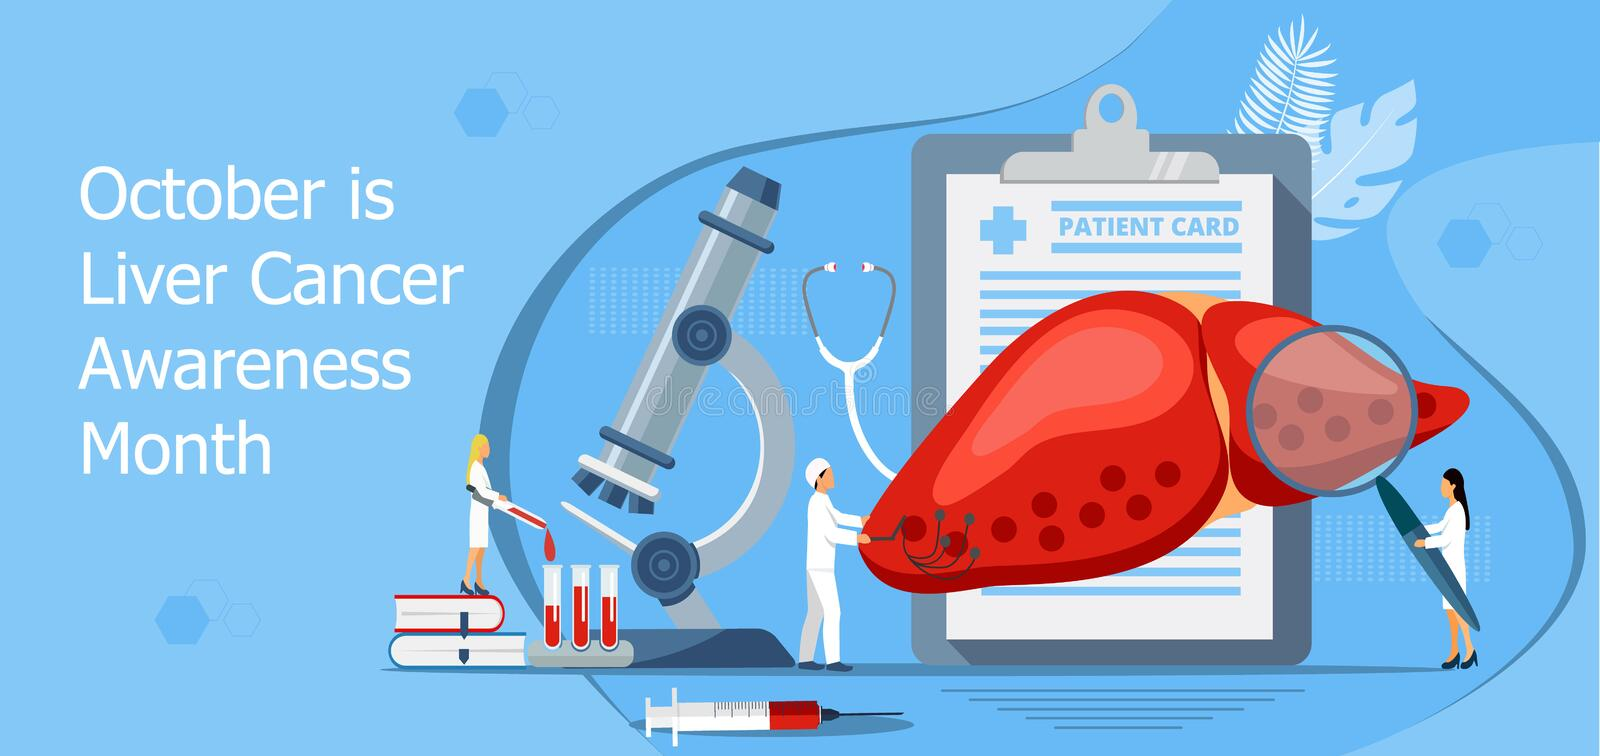 Liver Cancer Awareness Month is organised in October. Tiny people treat deasesed liver. Healthcare concept blue background vector for horizontal banner, web stock illustration